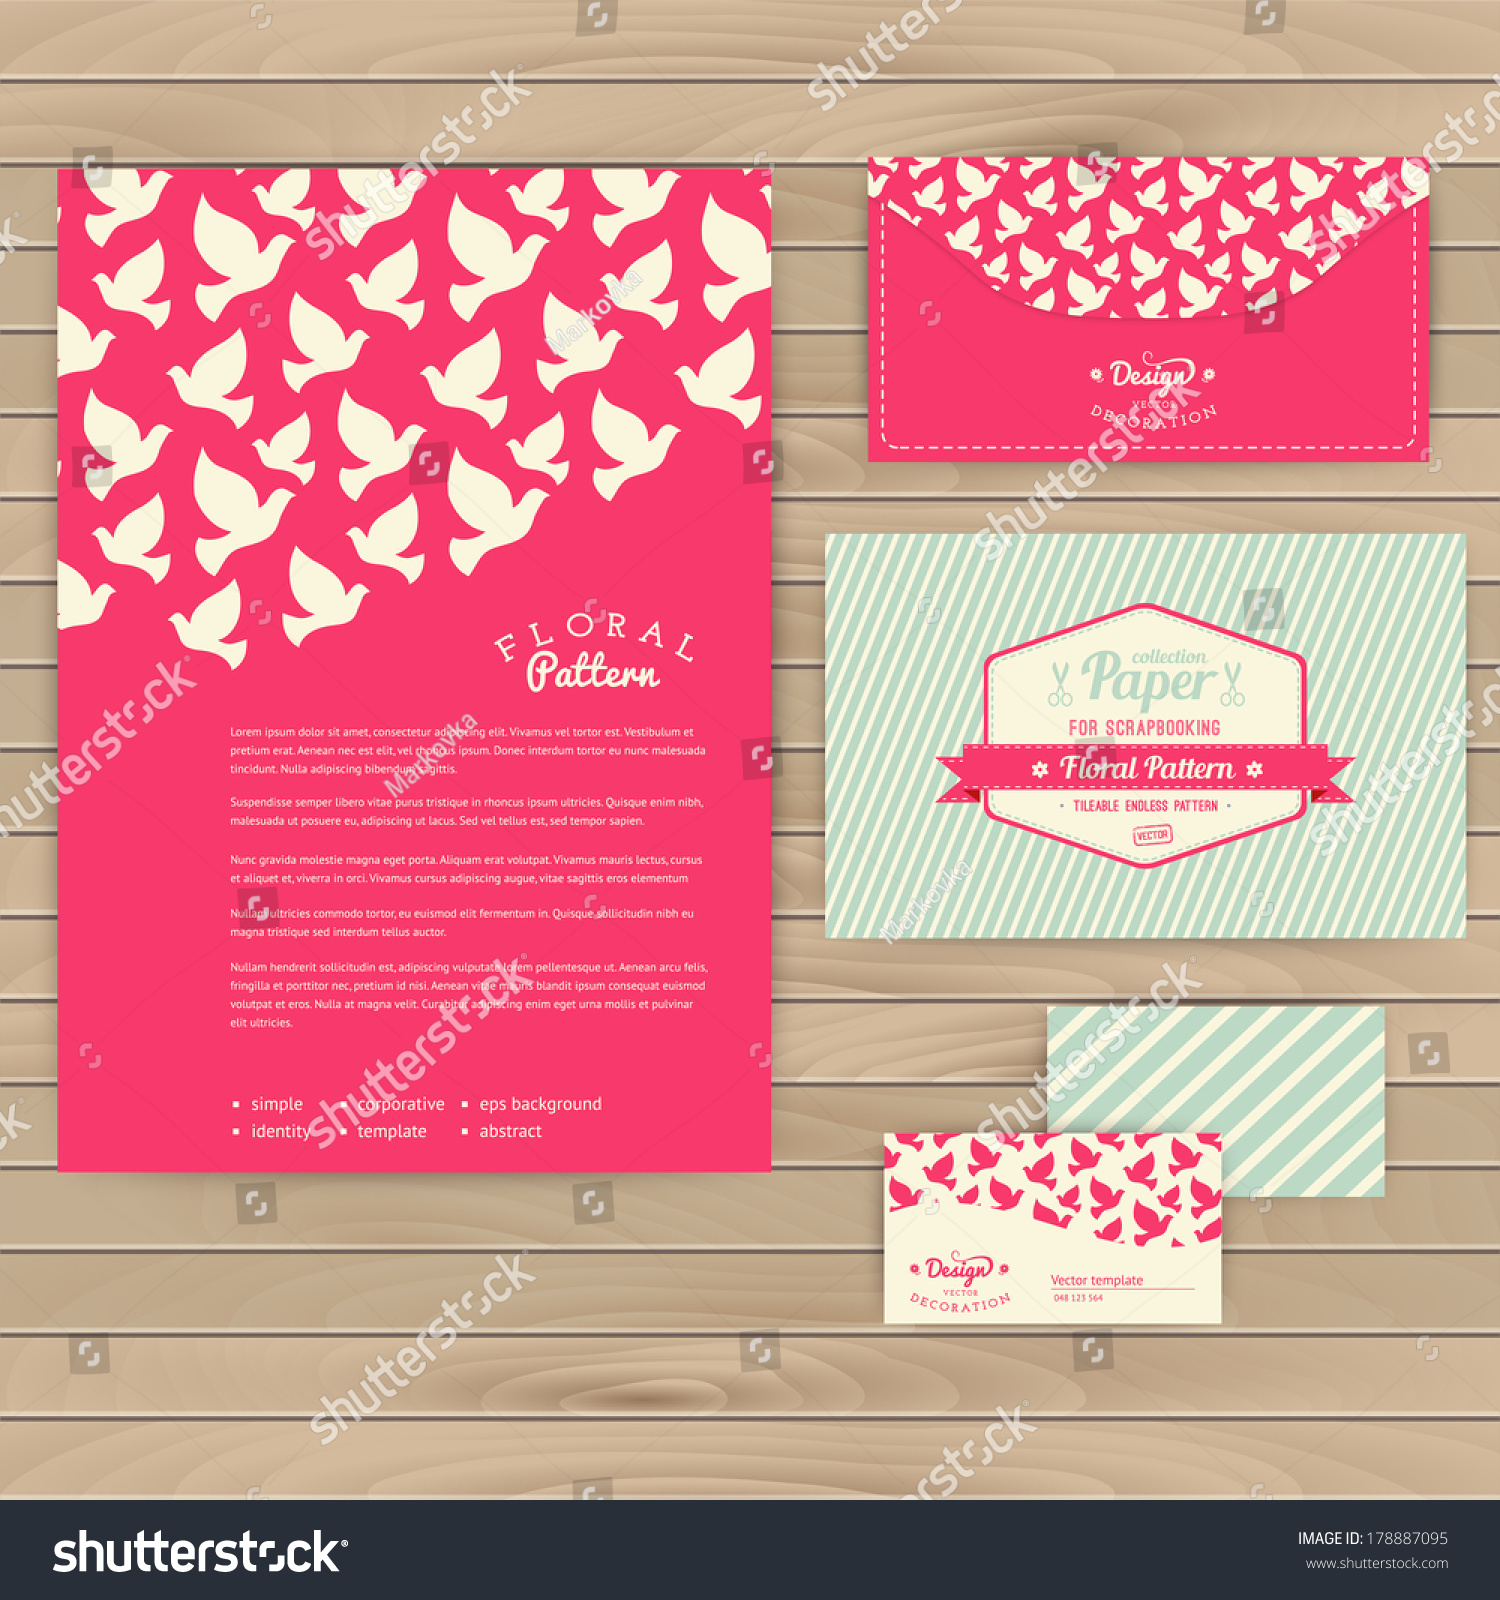 Online Invitation Cards is good invitation example